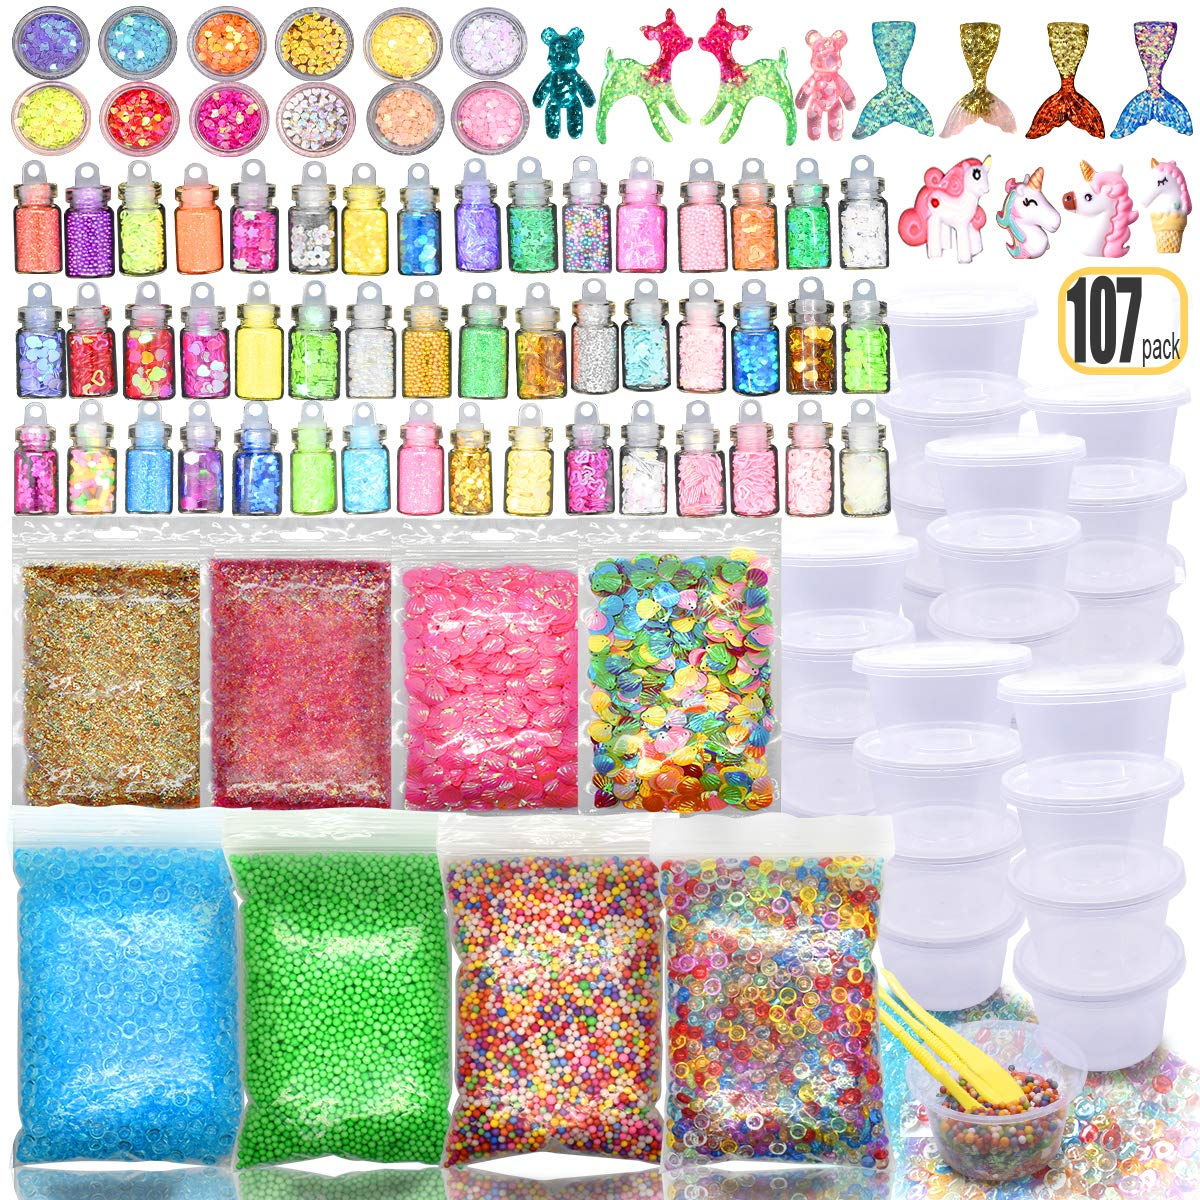 107PCS Slime kit Supplies Stuff Include Foam Beads Fishbowl Beads Glitter Jars Paper Sugar Accessories Slime Charms Shell Slime Containers with Lids by Hulluter